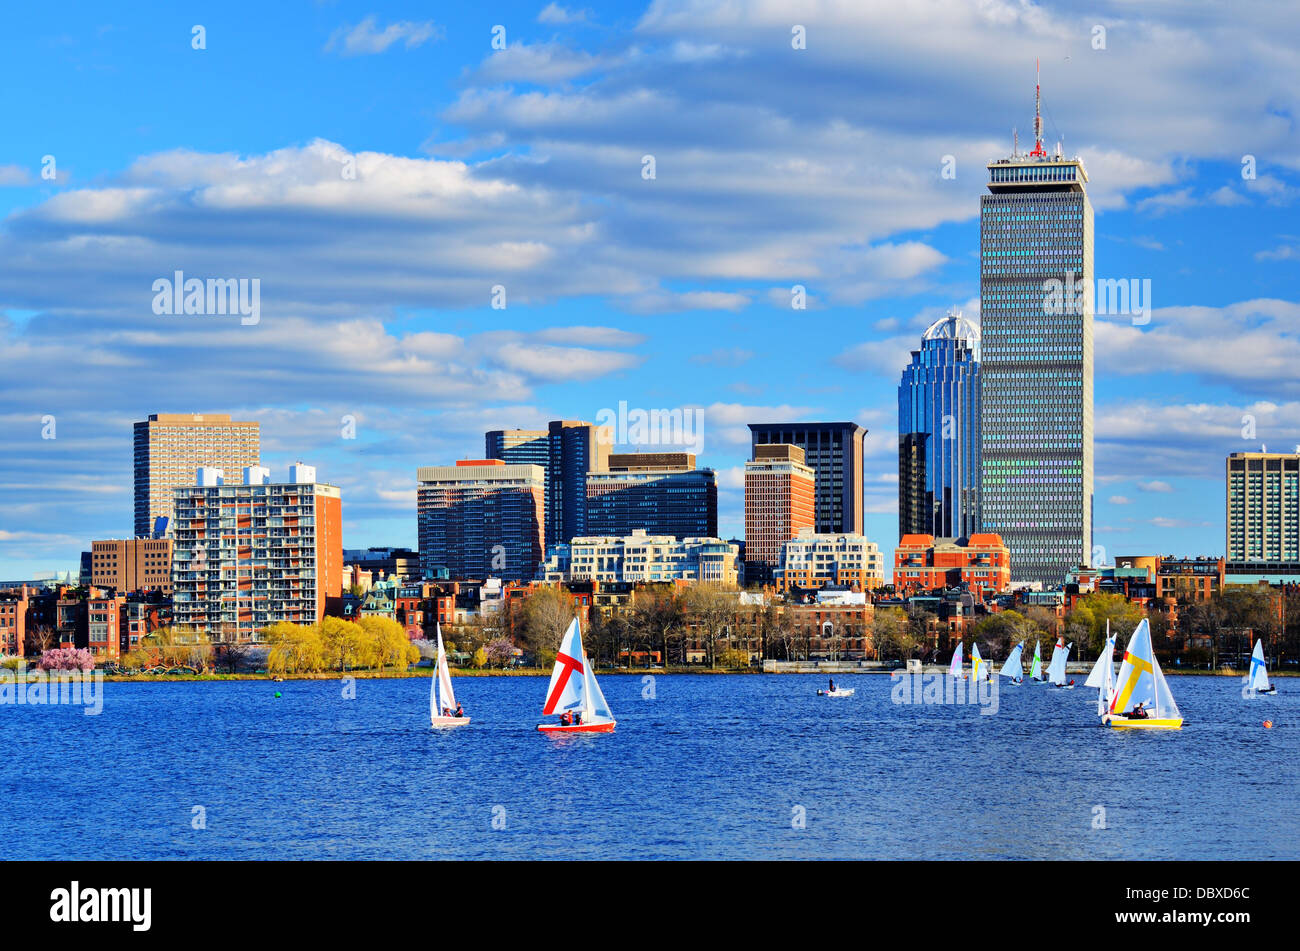 Boston, Massachusetts Skyline en distrito de Back Bay. Imagen De Stock